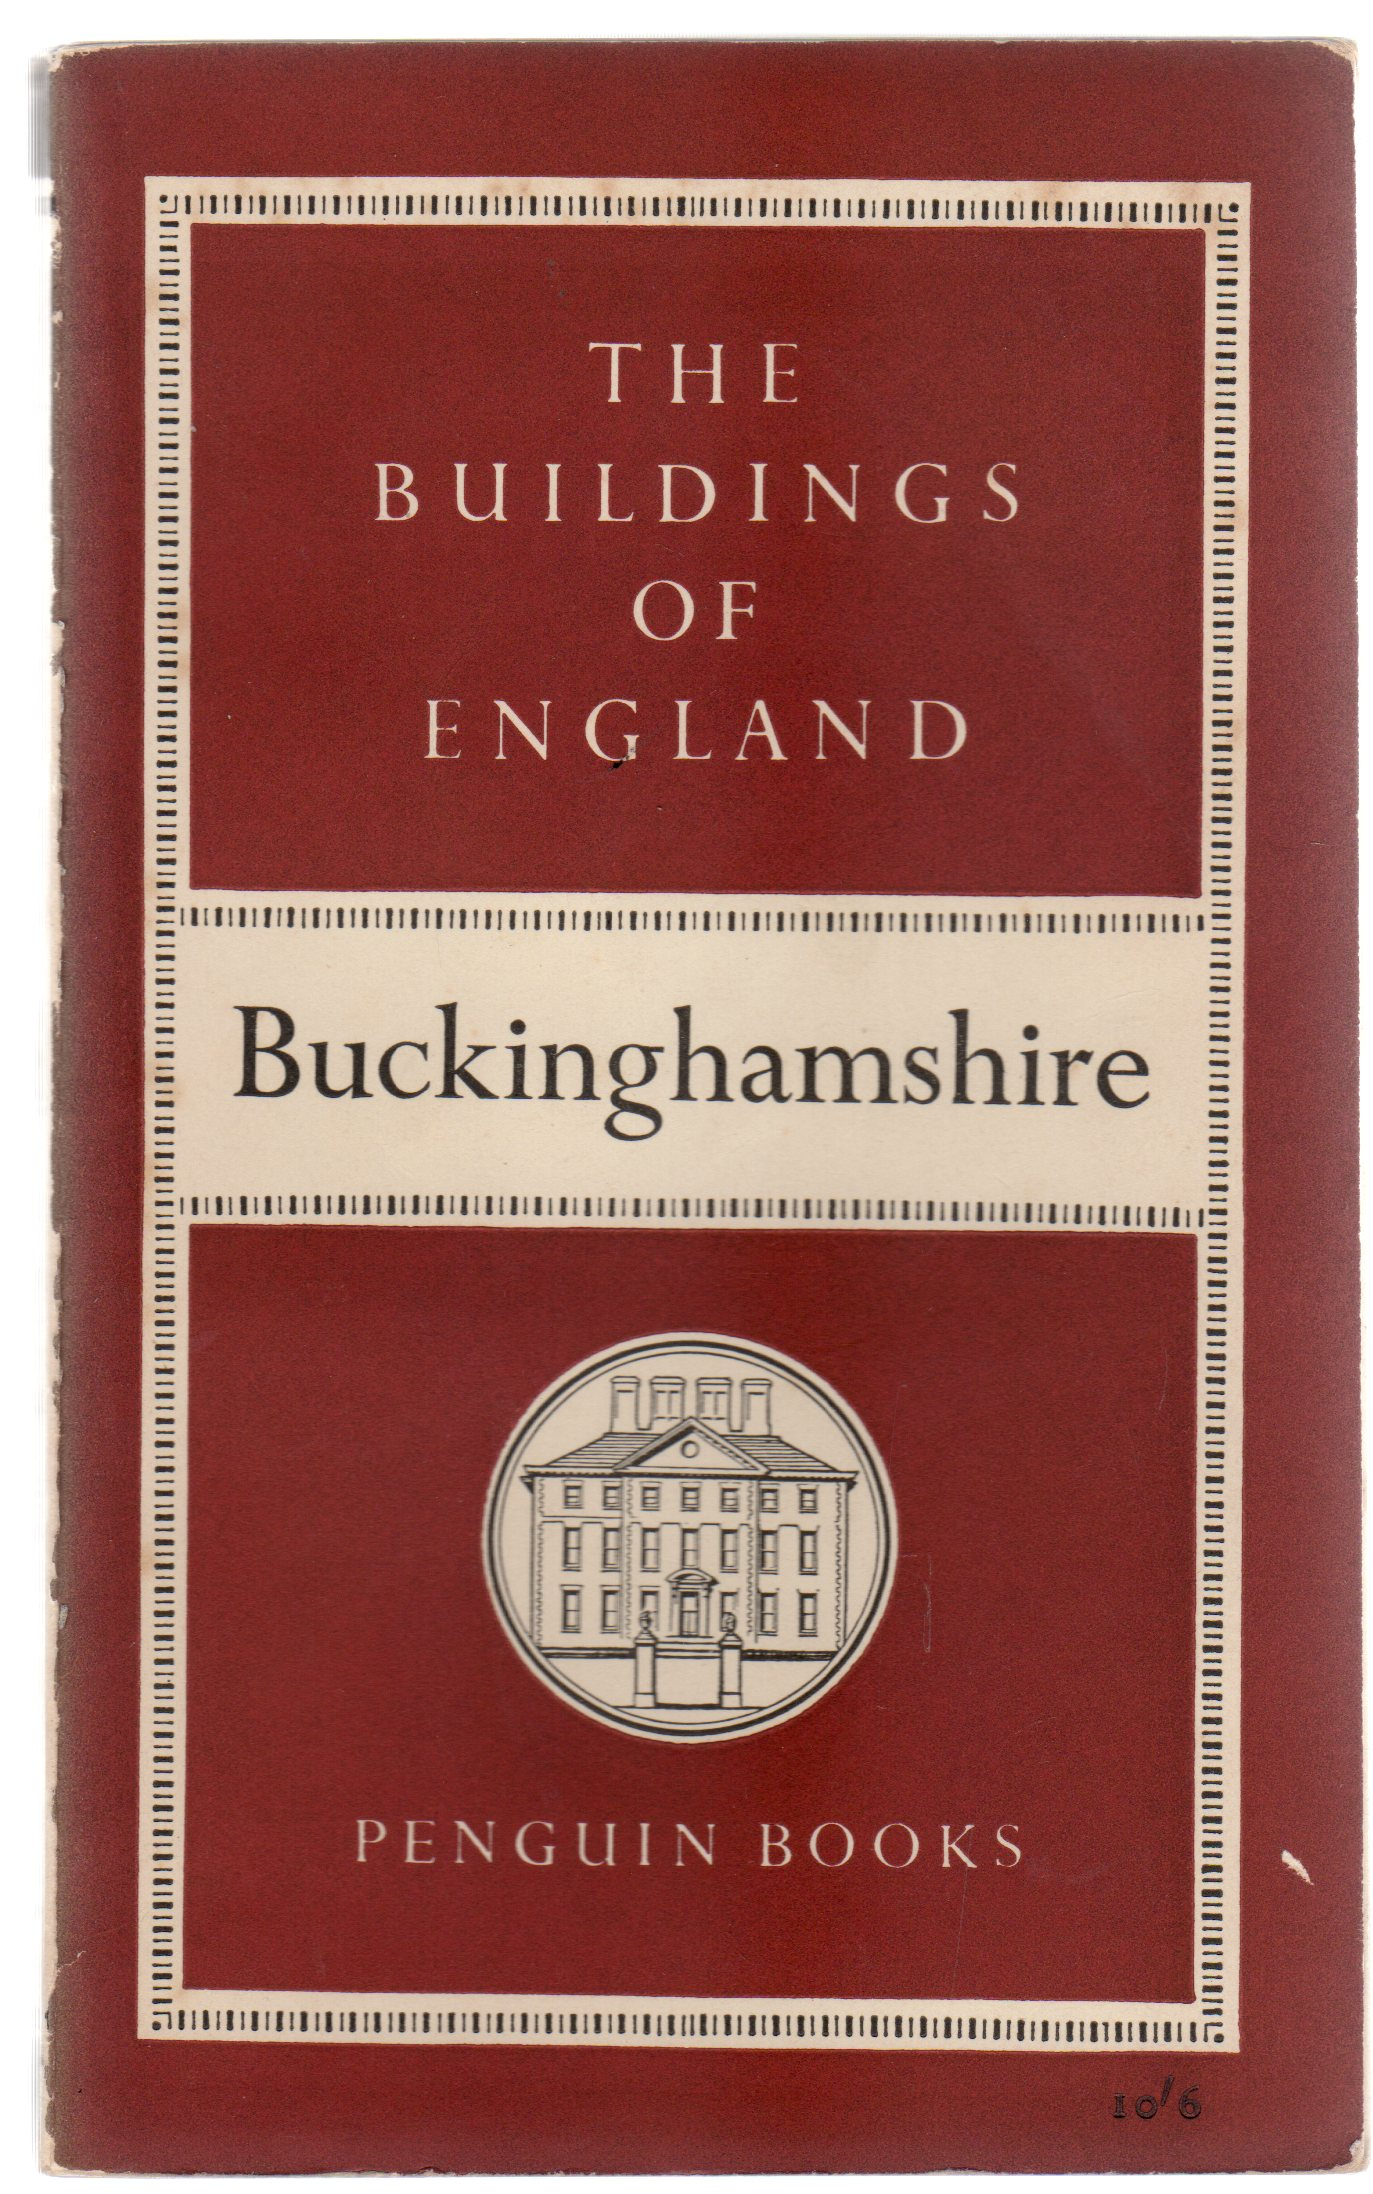 Image for The Buildings of England Buckinghamshire